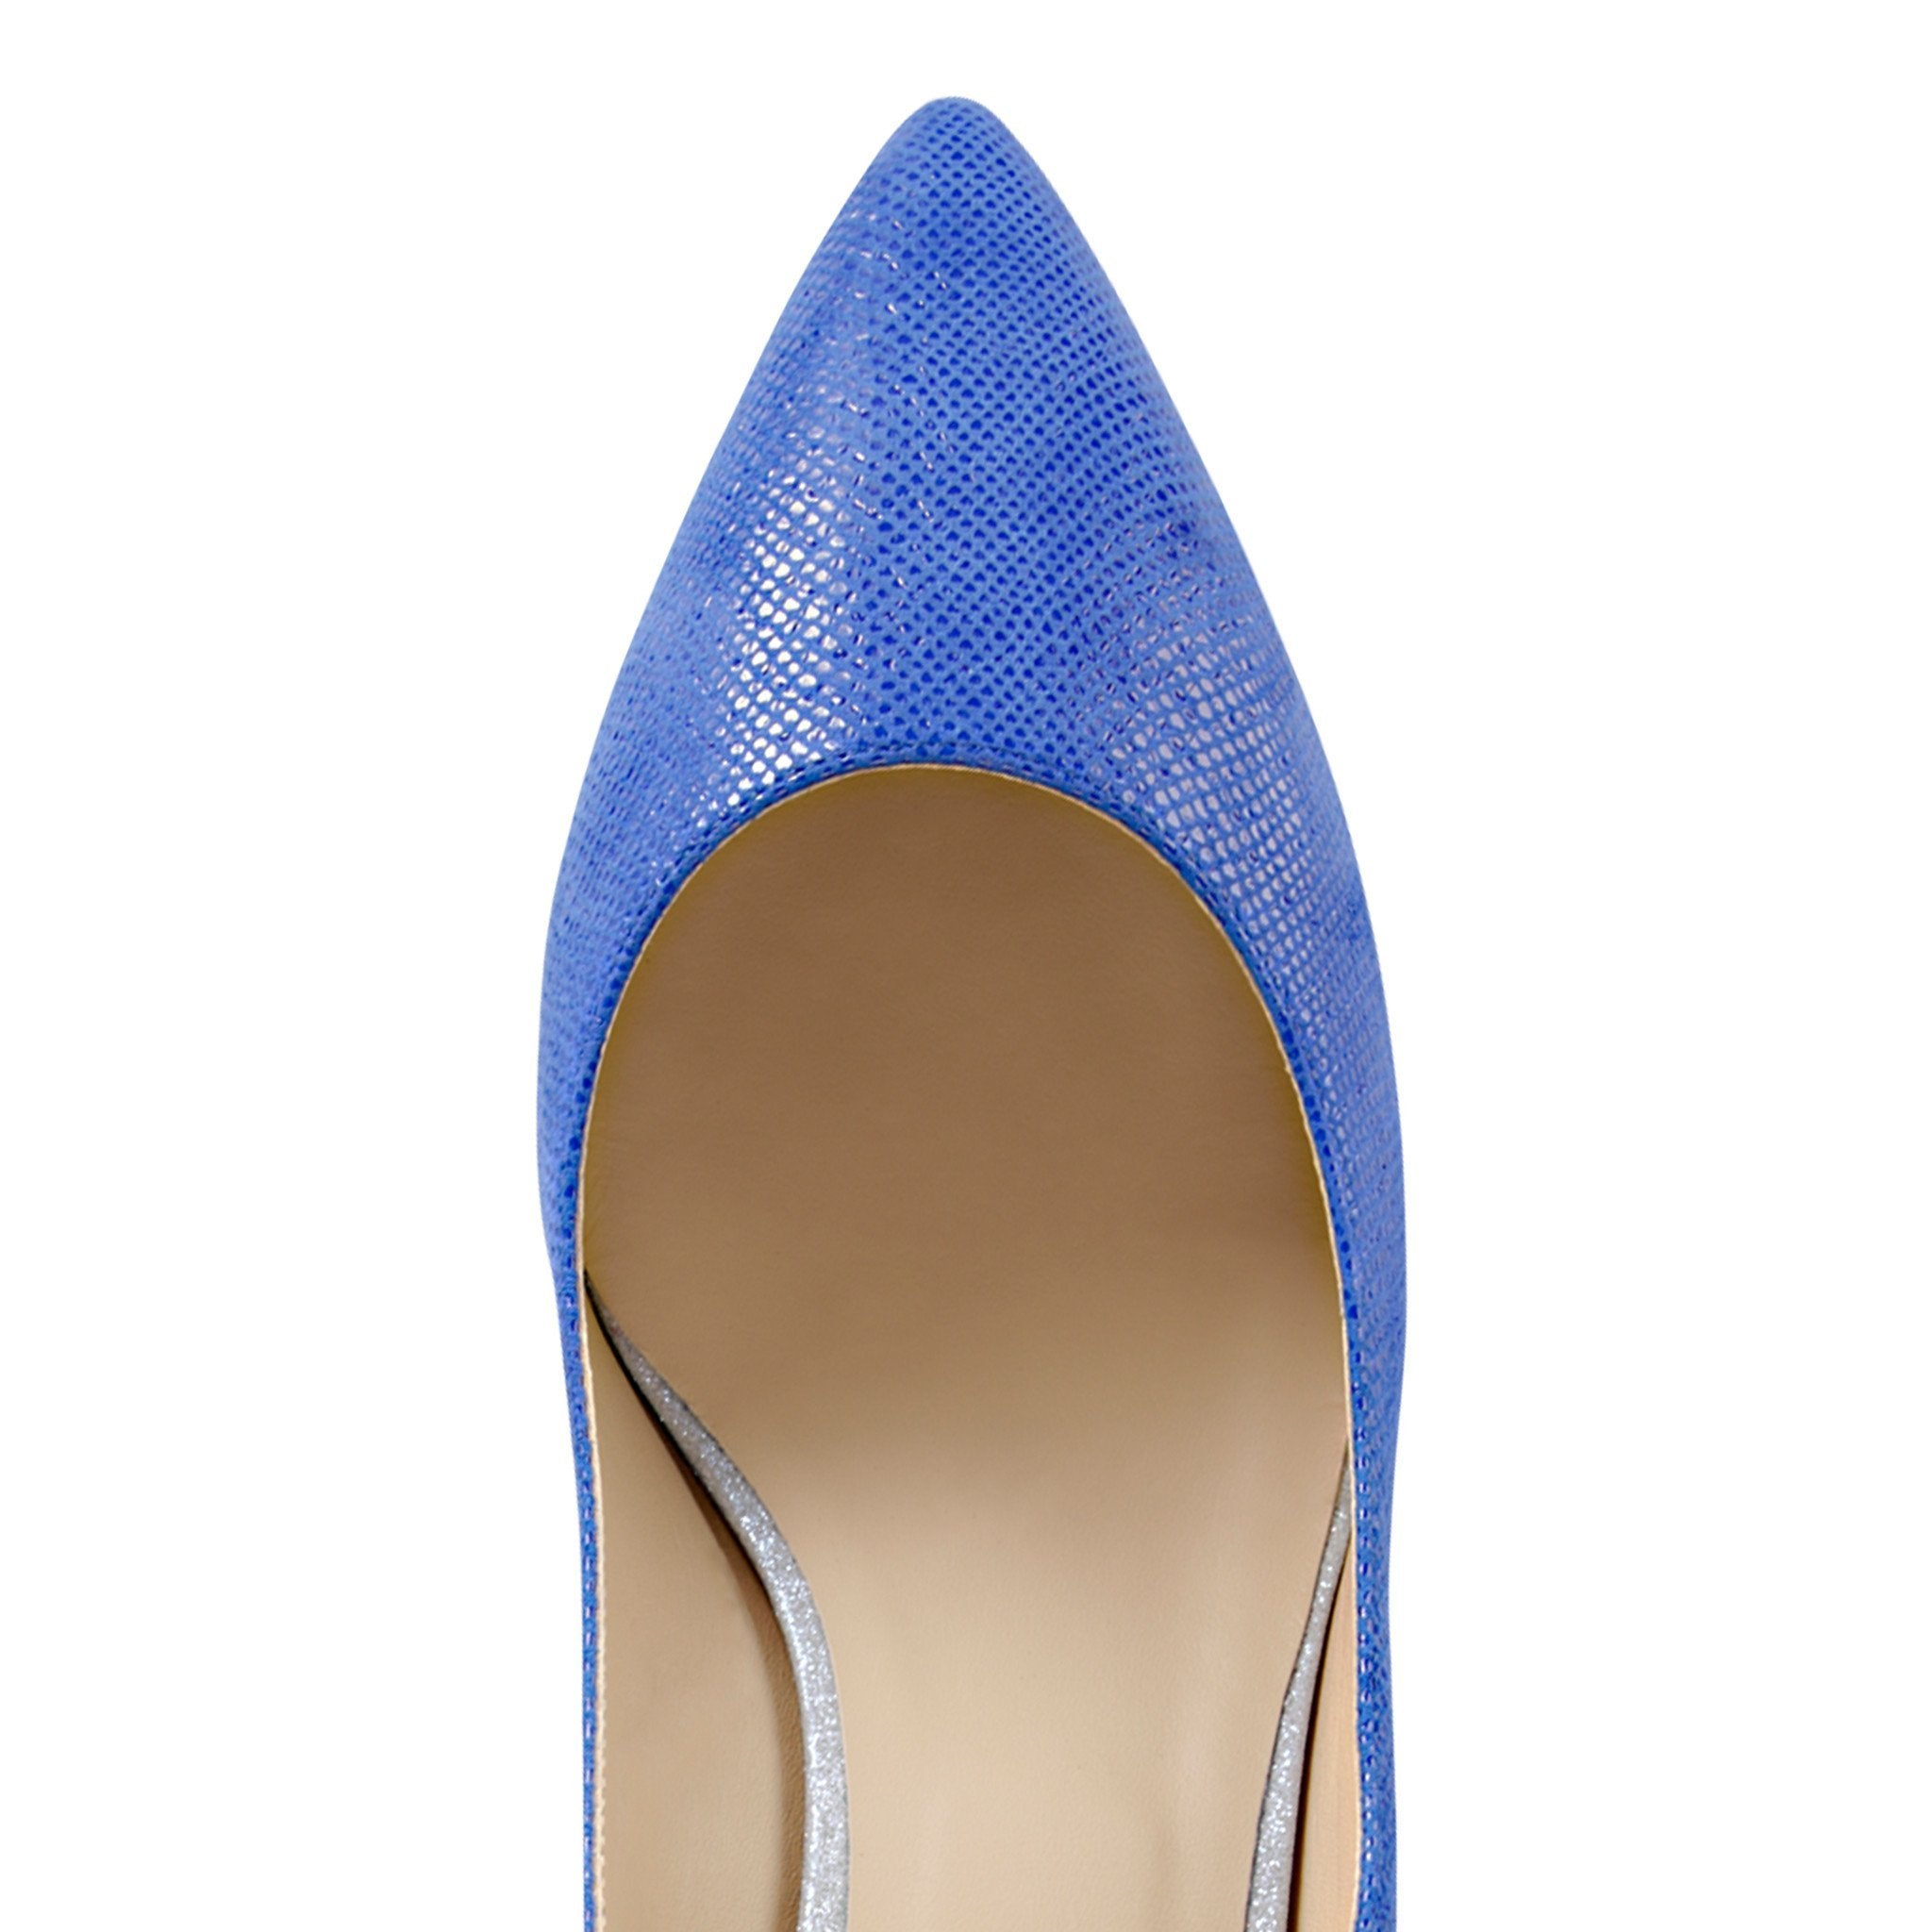 TRENTO - Karung Cobalt + Bright Argento, VIAJIYU - Women's Hand Made Sustainable Luxury Shoes. Made in Italy. Made to Order.